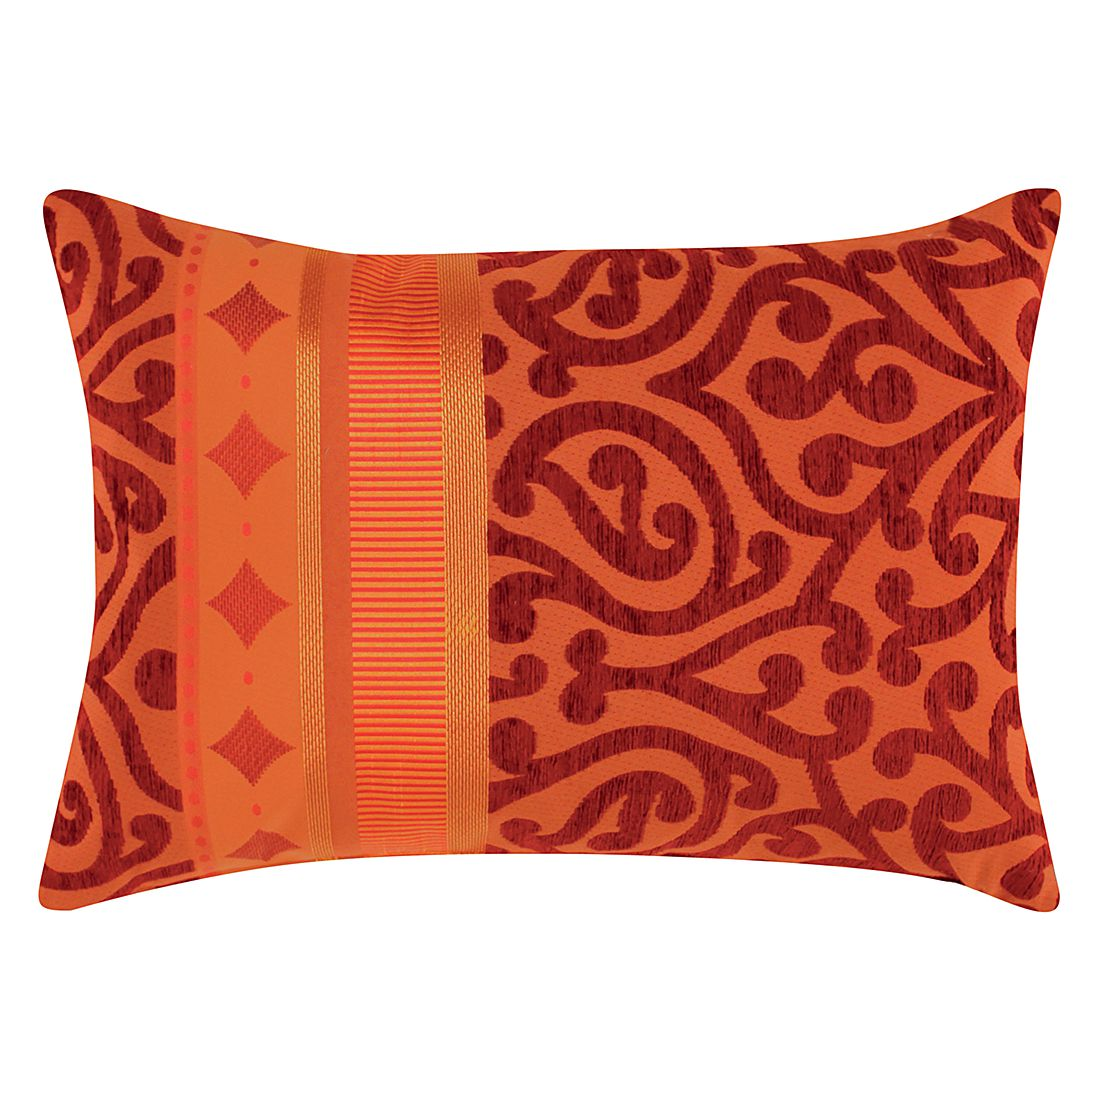 Home 24 - Coussin prato - rouge, apelt